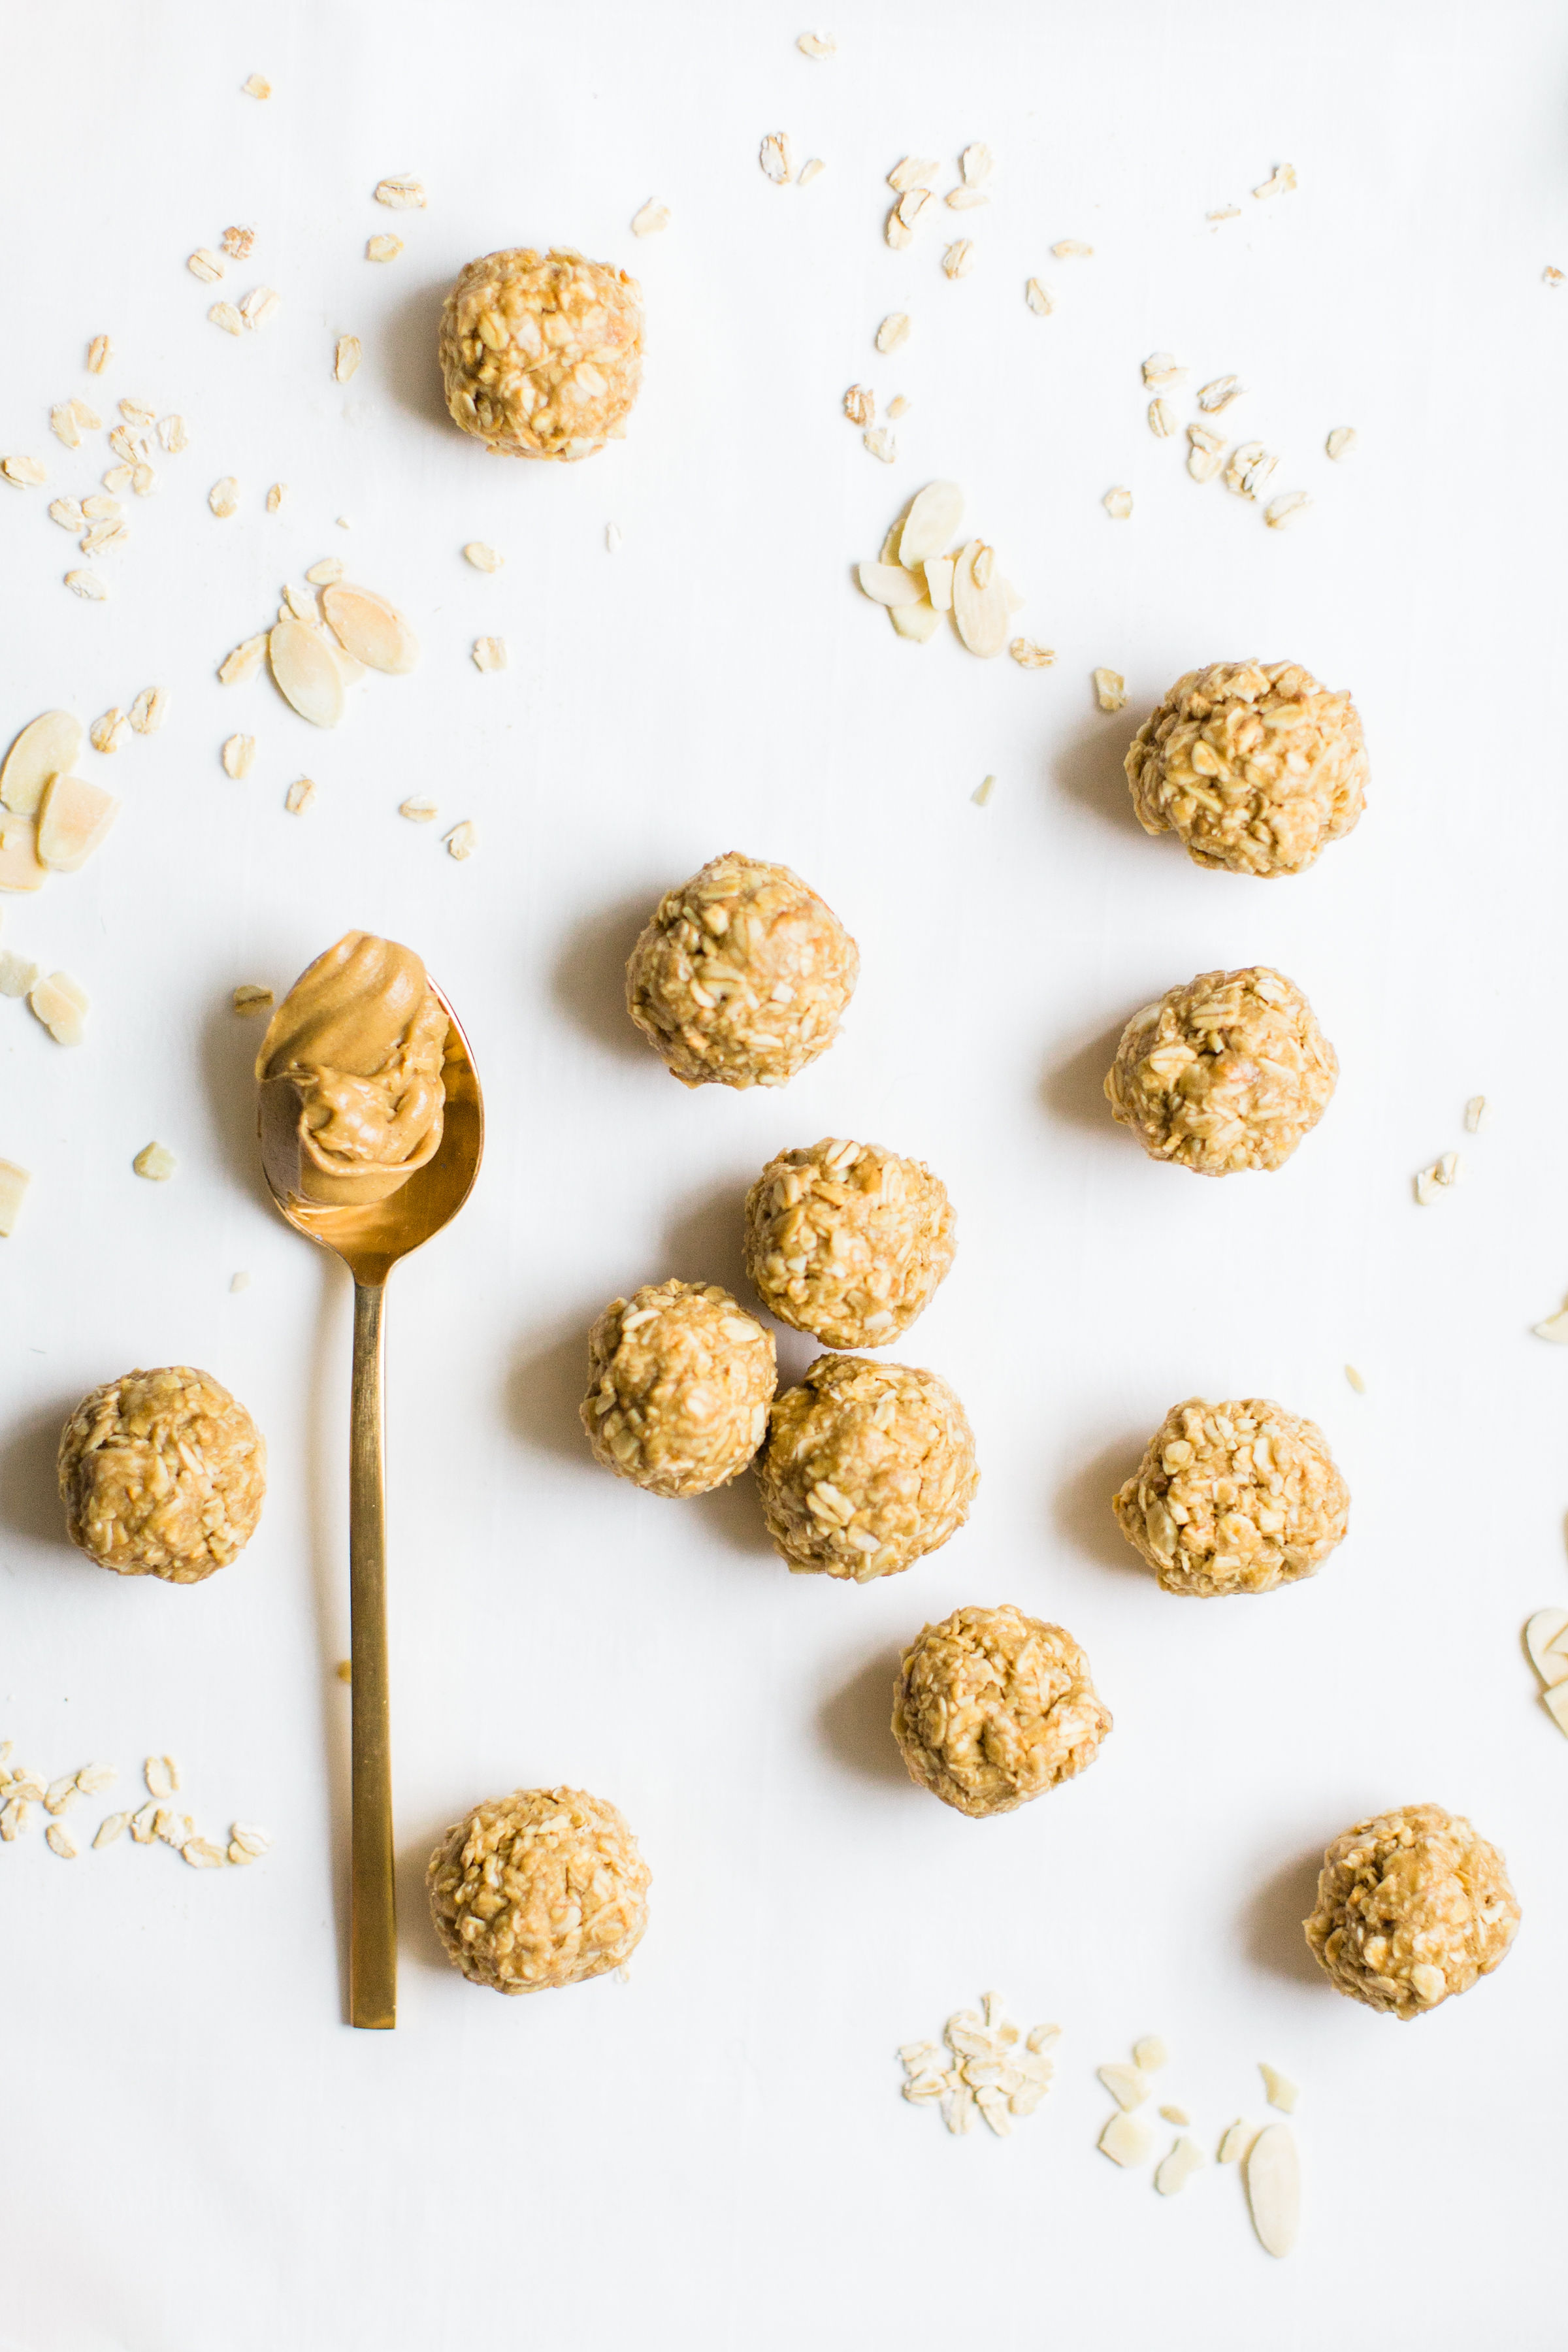 These no-bake energy bites are easy to make, the perfect combination of sweet and salty, have plenty of added protein thanks to the peanut butter, and kids absolutely love them because they're basically deliciousno-bake cookies! Click through for the recipe. #snack #energybites #nobake  #healthysnack #kidsrecipe #kidssnack | glitterinc.com | @glitterinc